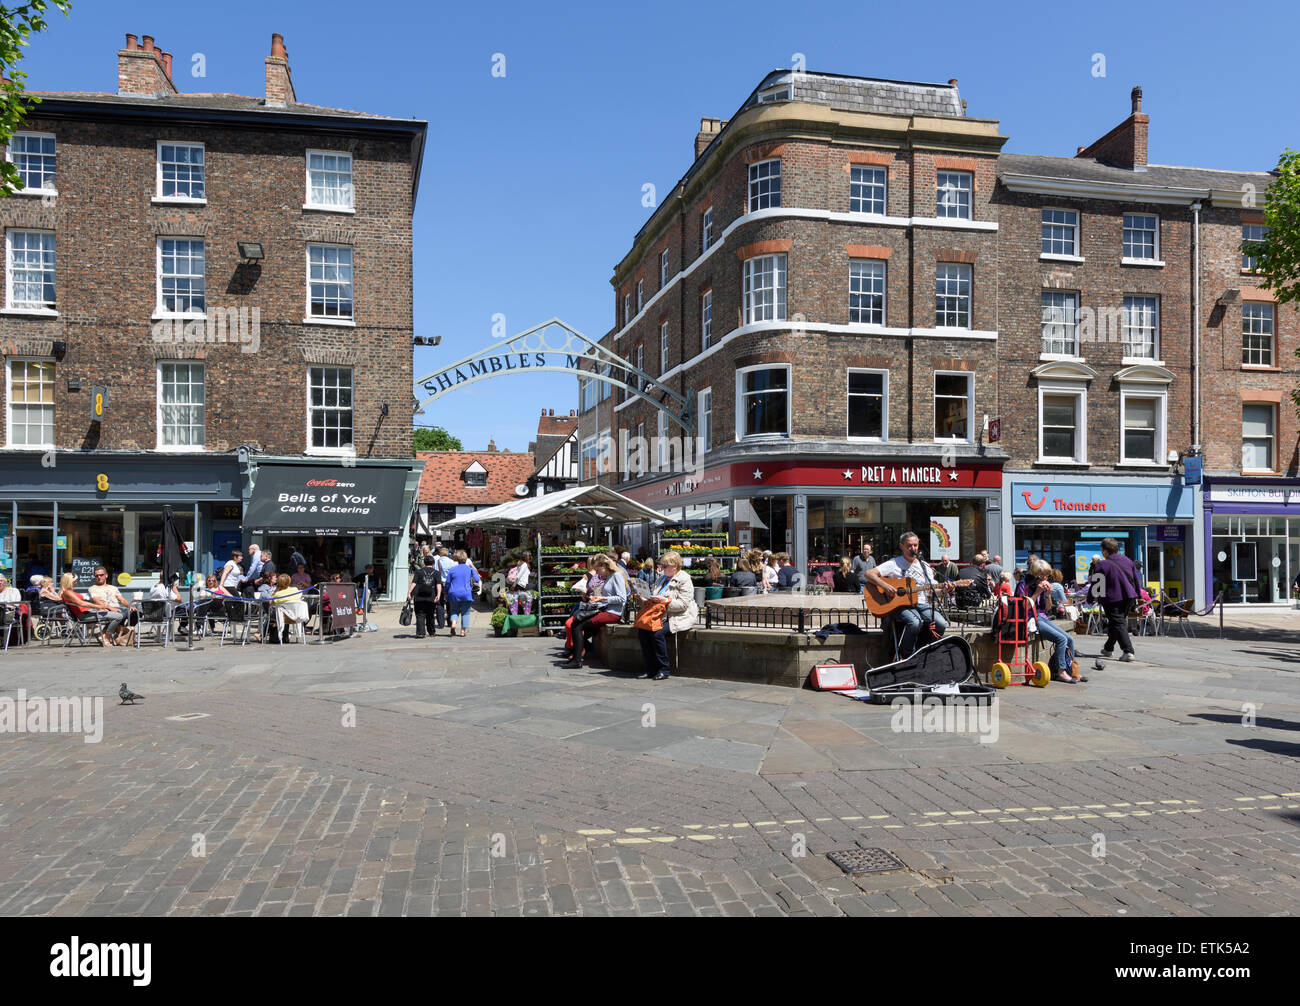 Entrance to Shambles Market from Parliament St York - Stock Image